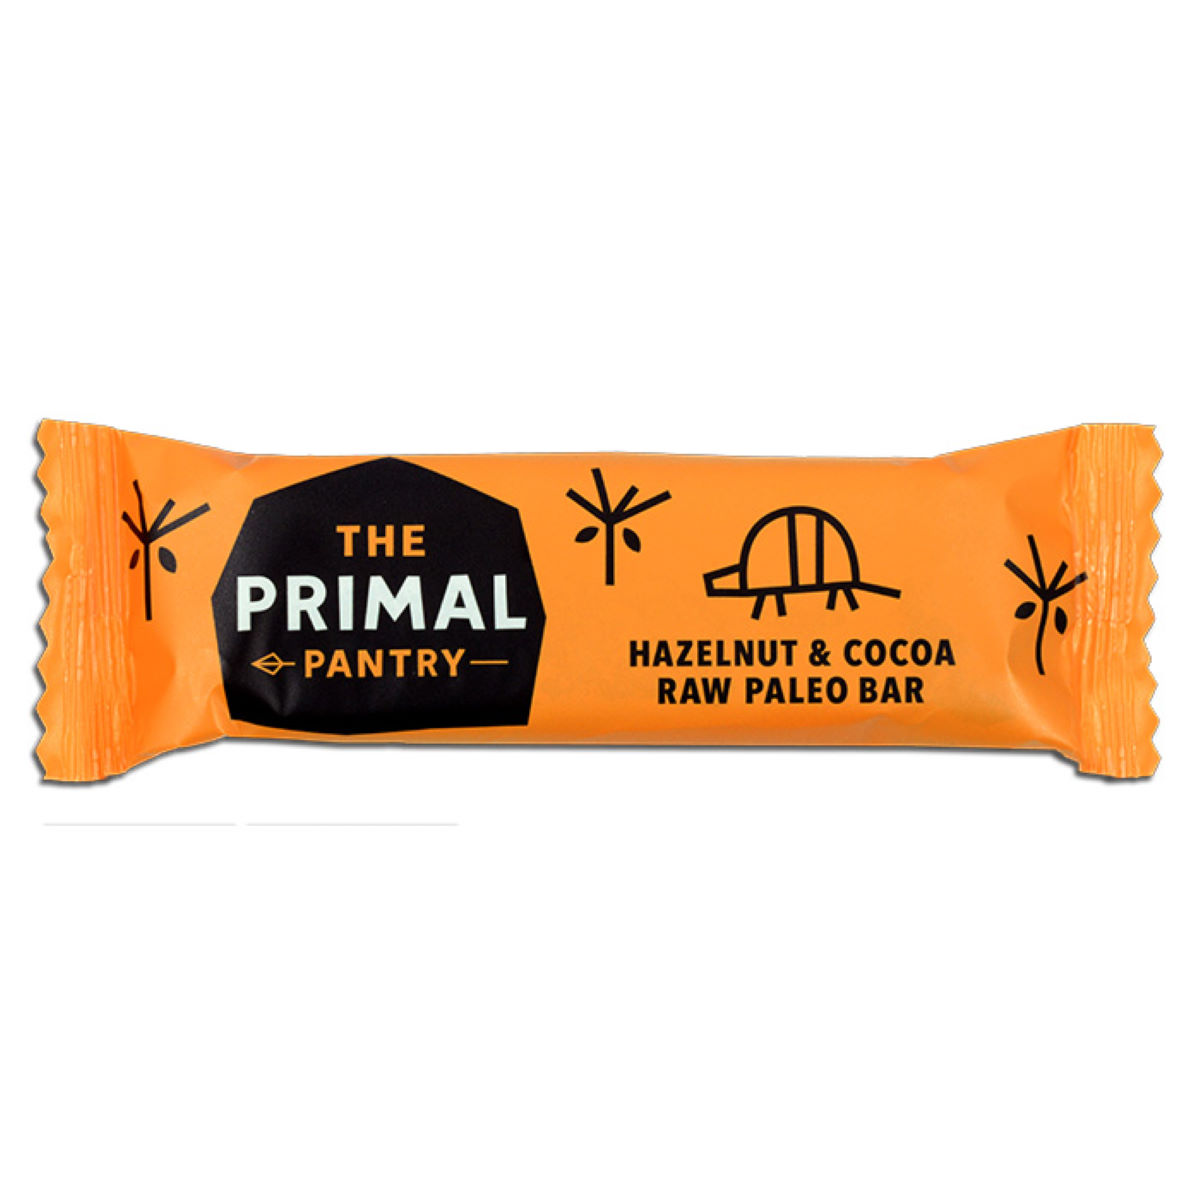 Image of Barres The Primal Pantry Raw Paleo - 41-60g Hazelnut | Barres